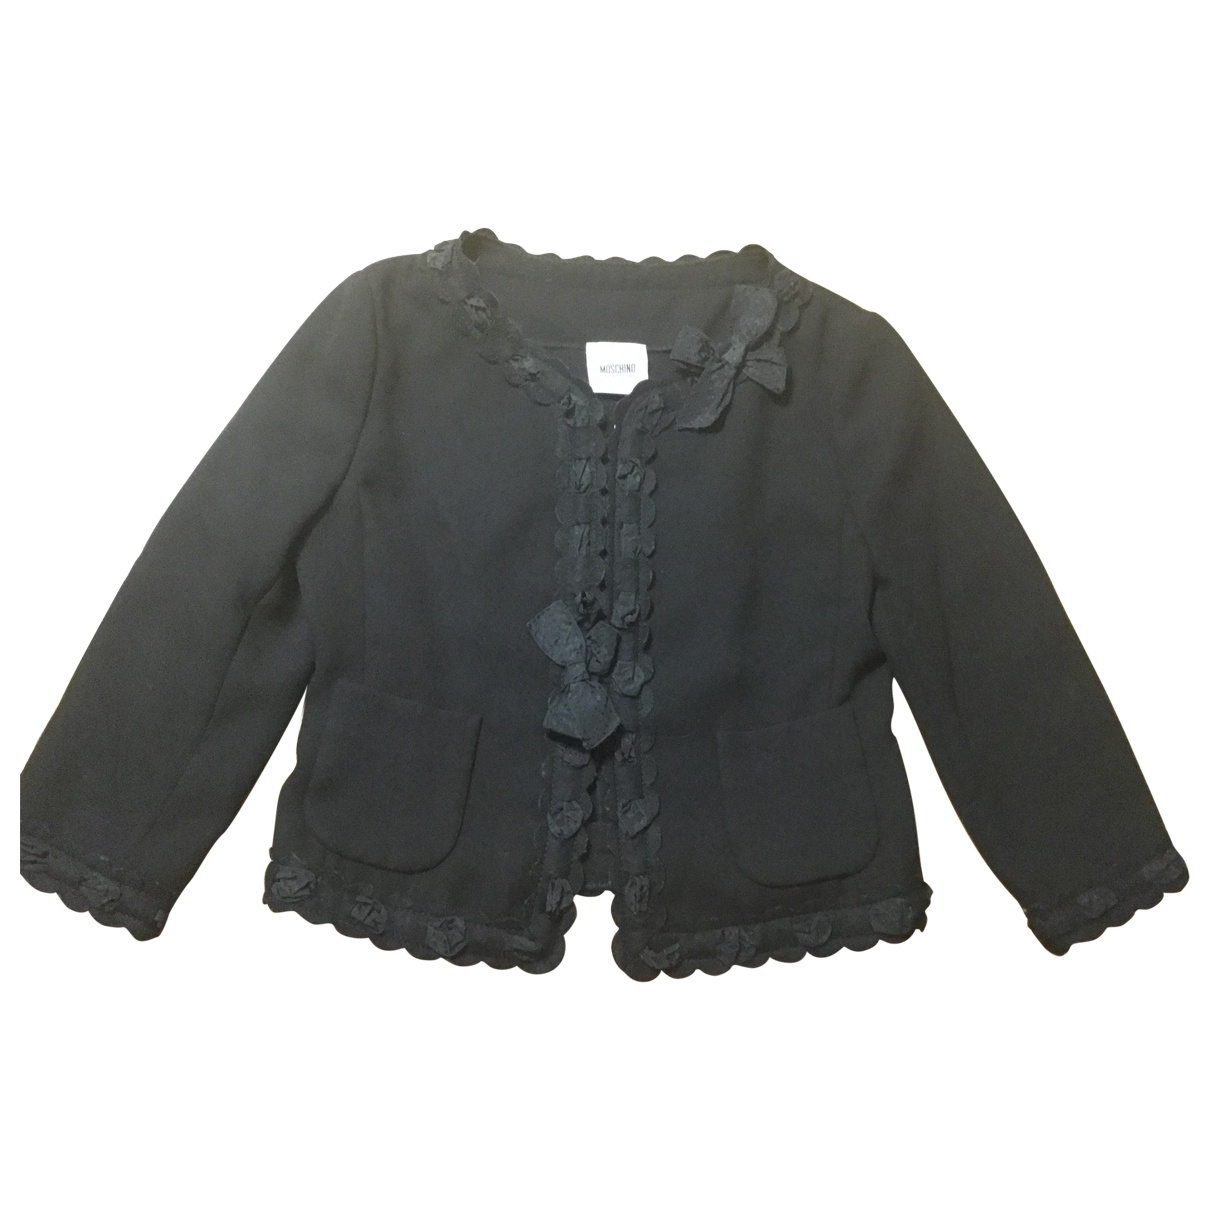 Moschino Cheap And Chic \N Black jacket for Women 40 FR